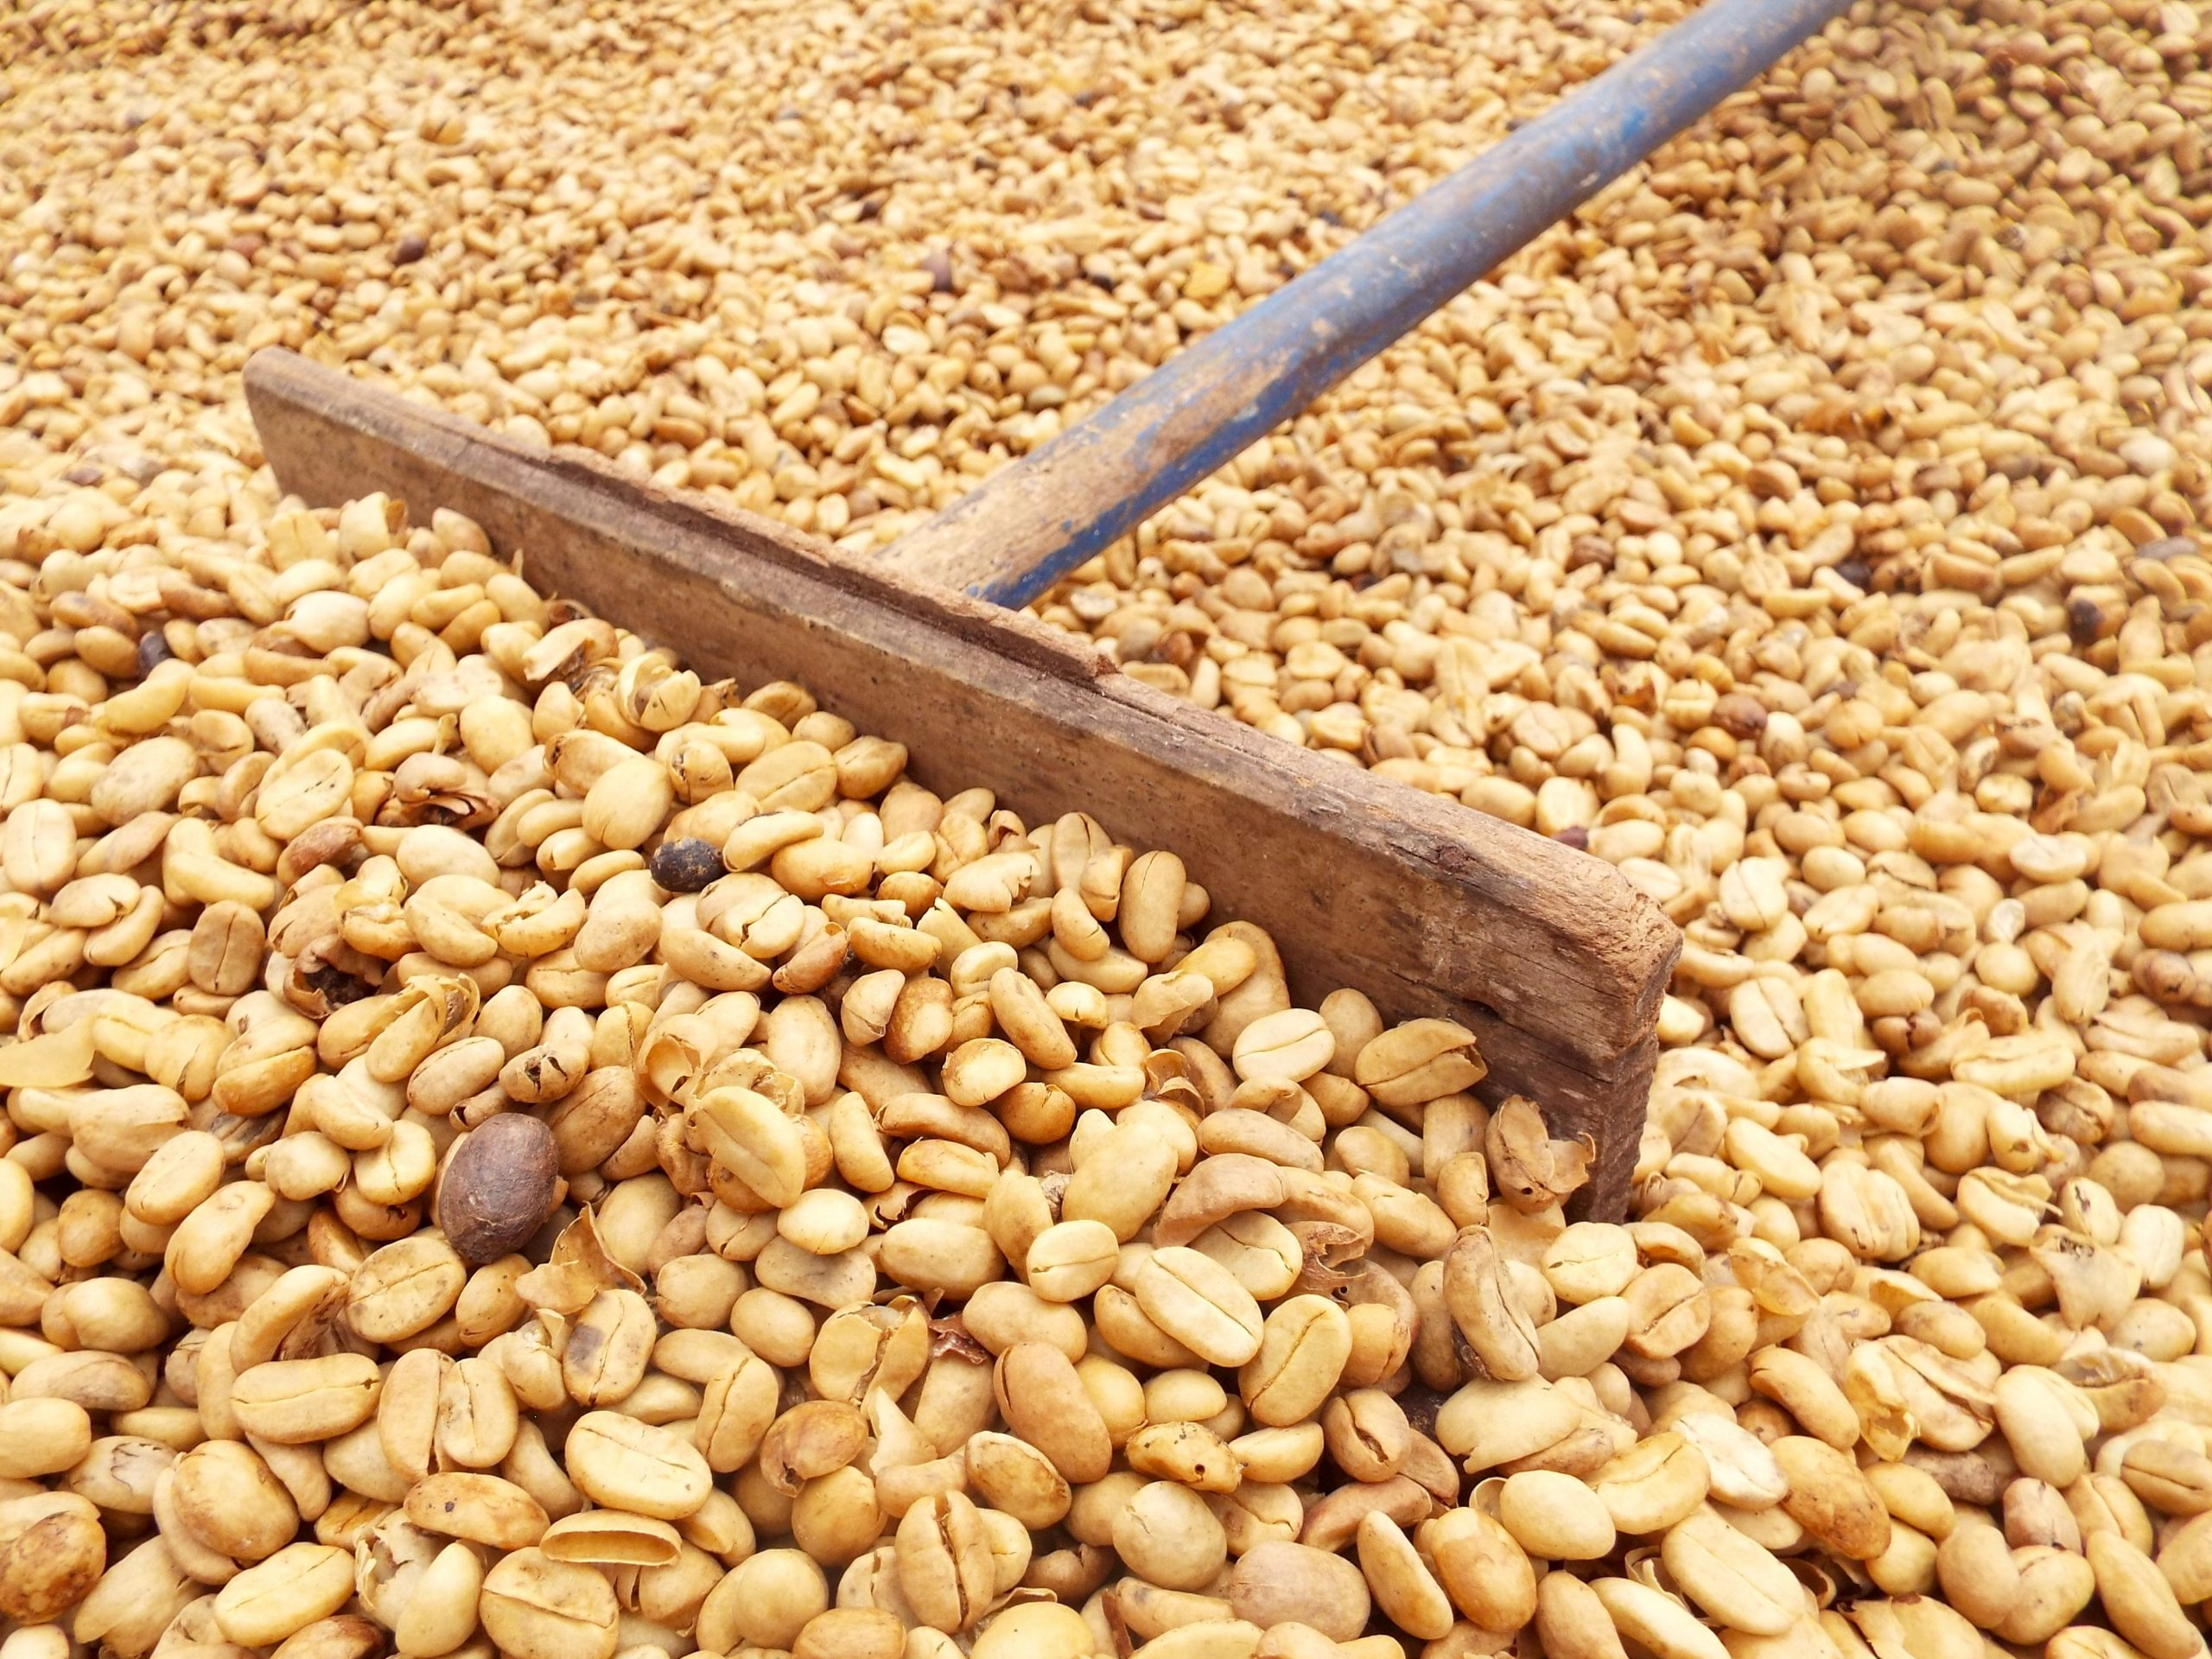 Producer raking green coffee beans in a drying bed